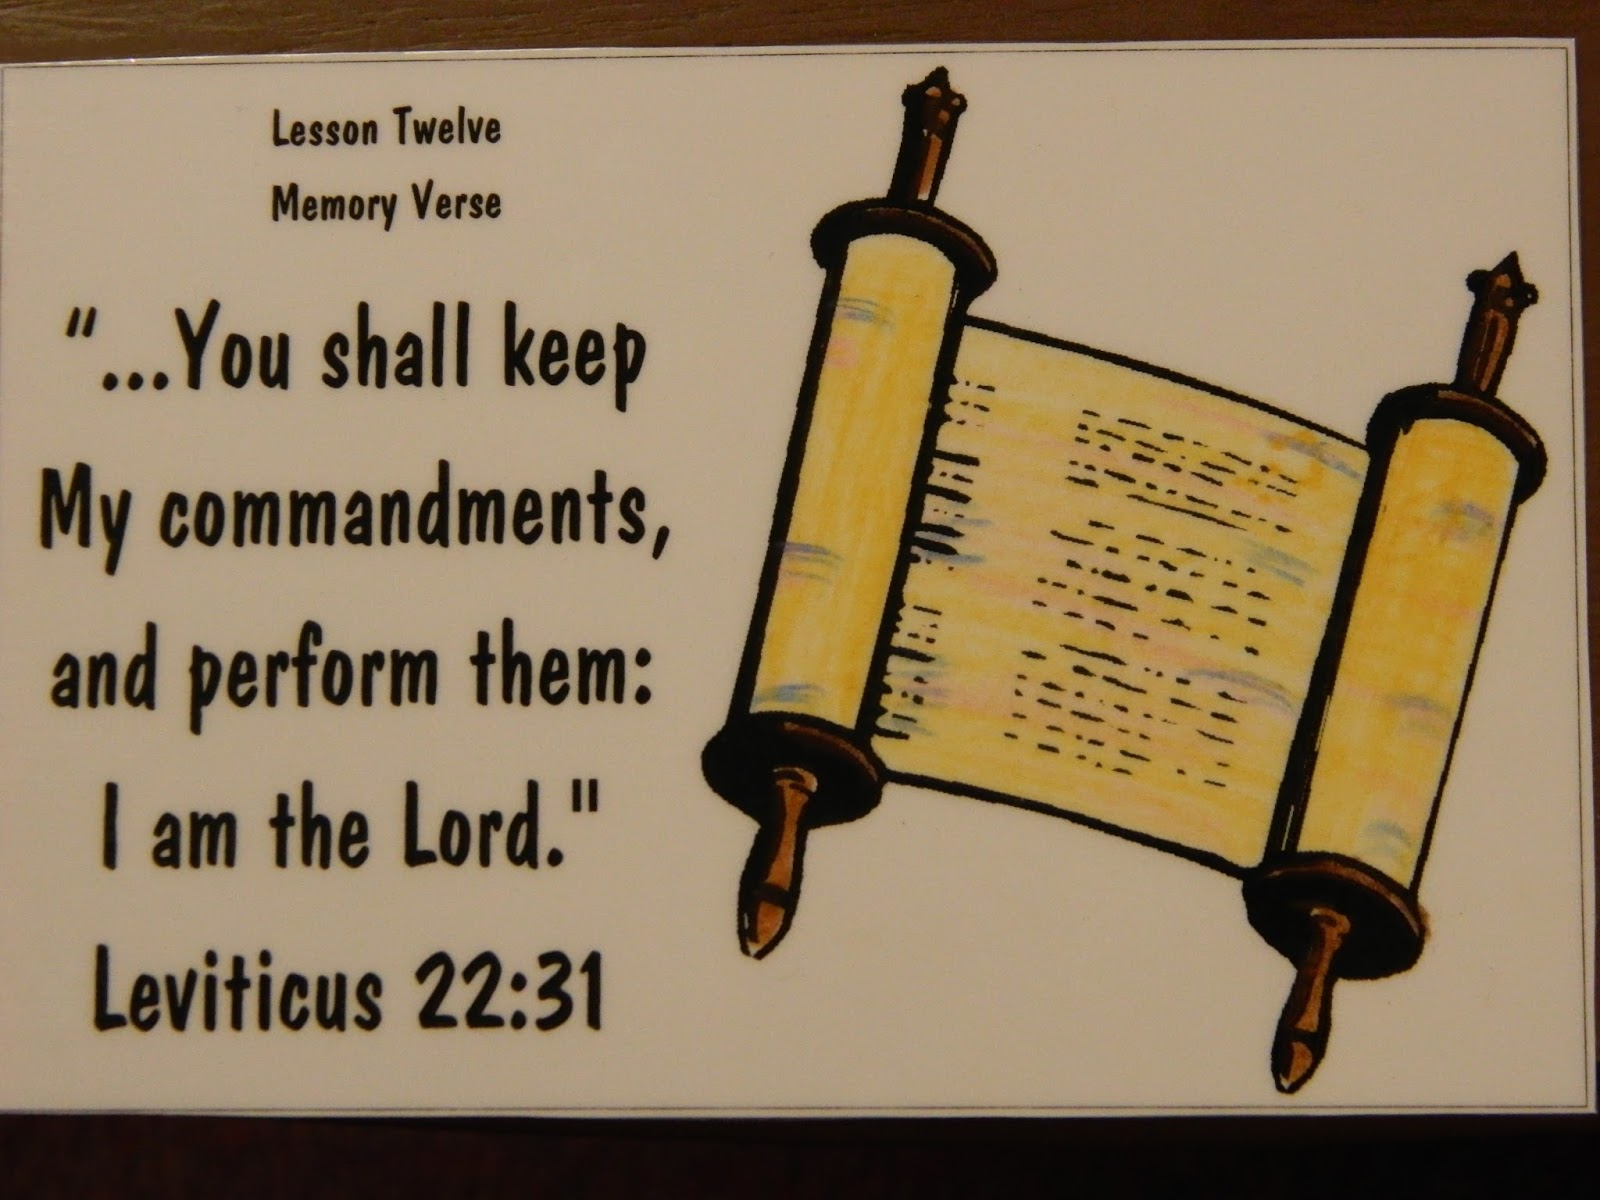 Bible lesson josiah finds the law of the lord - Thursday September 12 2013